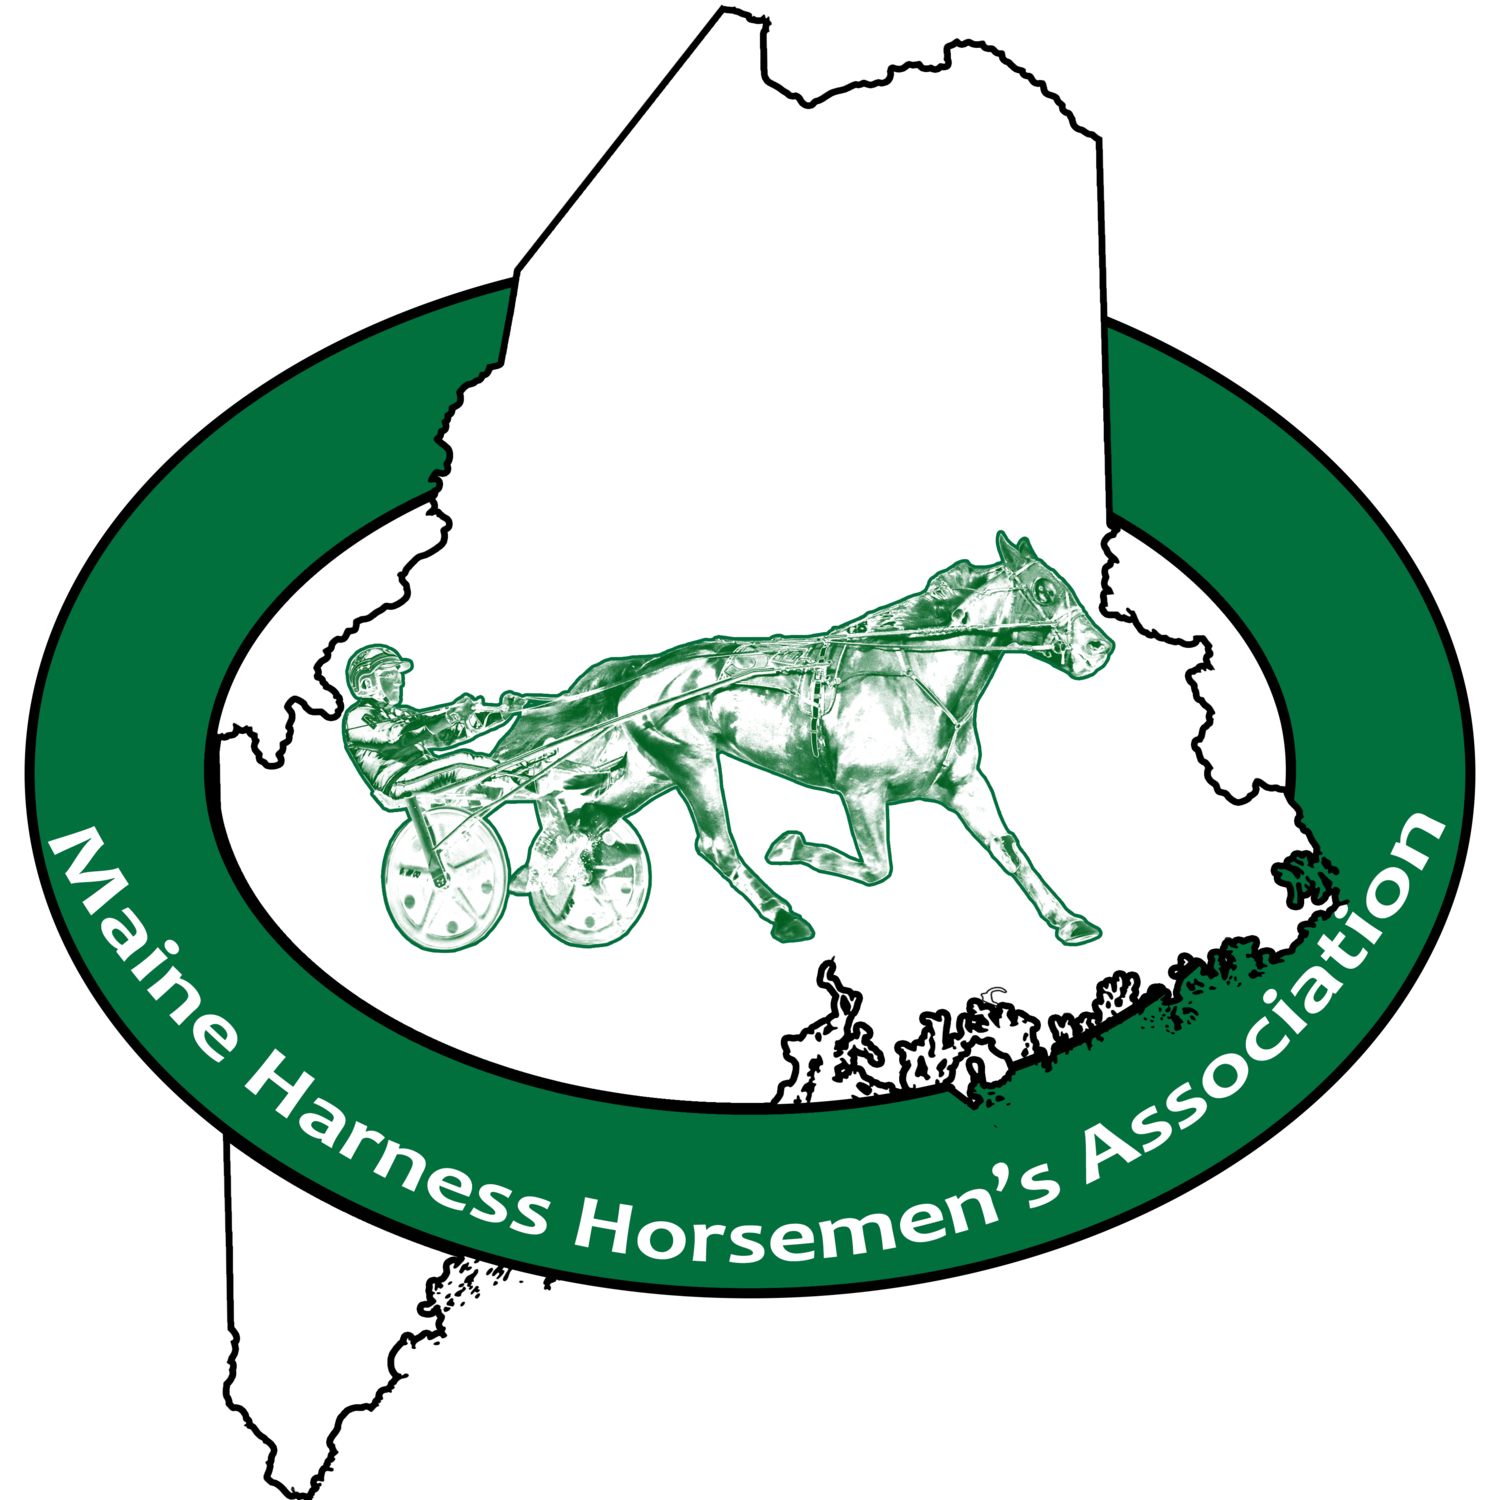 Maine Harness Horsemen's Association